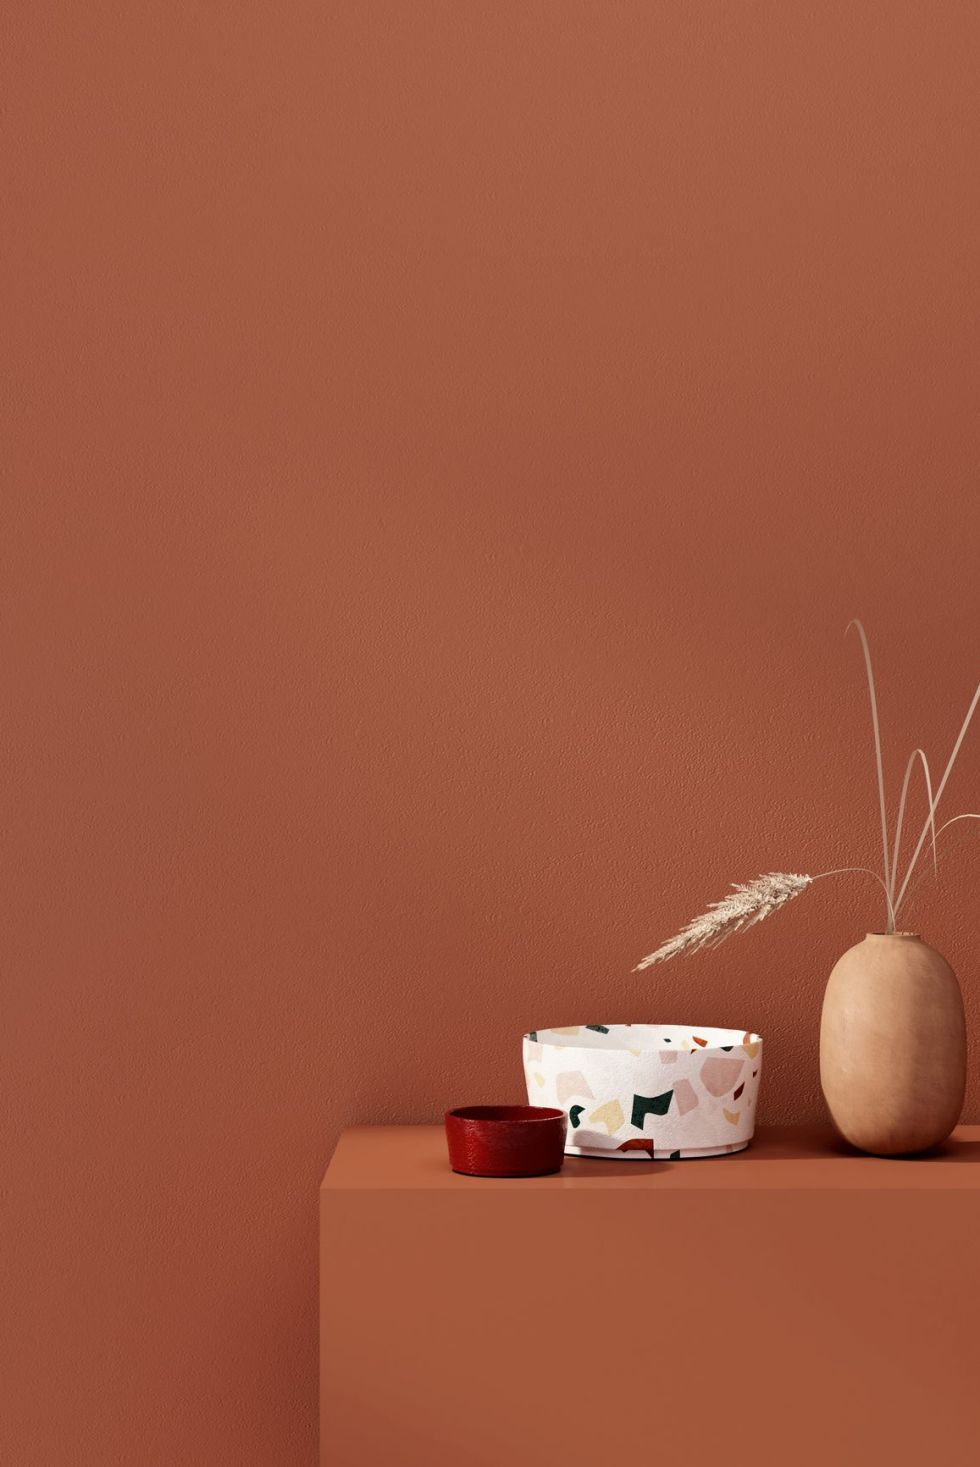 paint colors 2020- terracotta wall